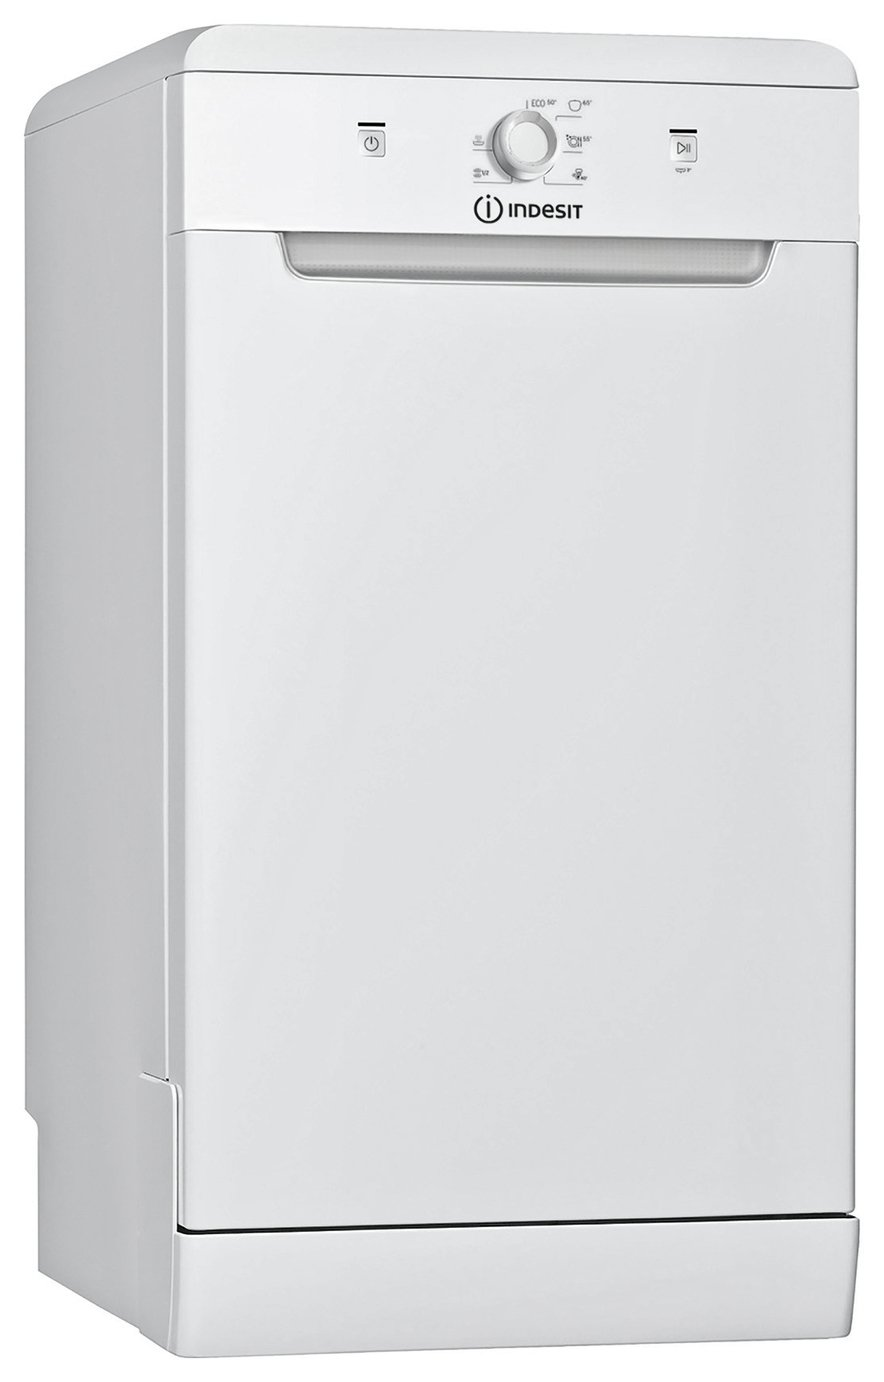 Indesit DSFE1B10 Slimline Dishwasher - White